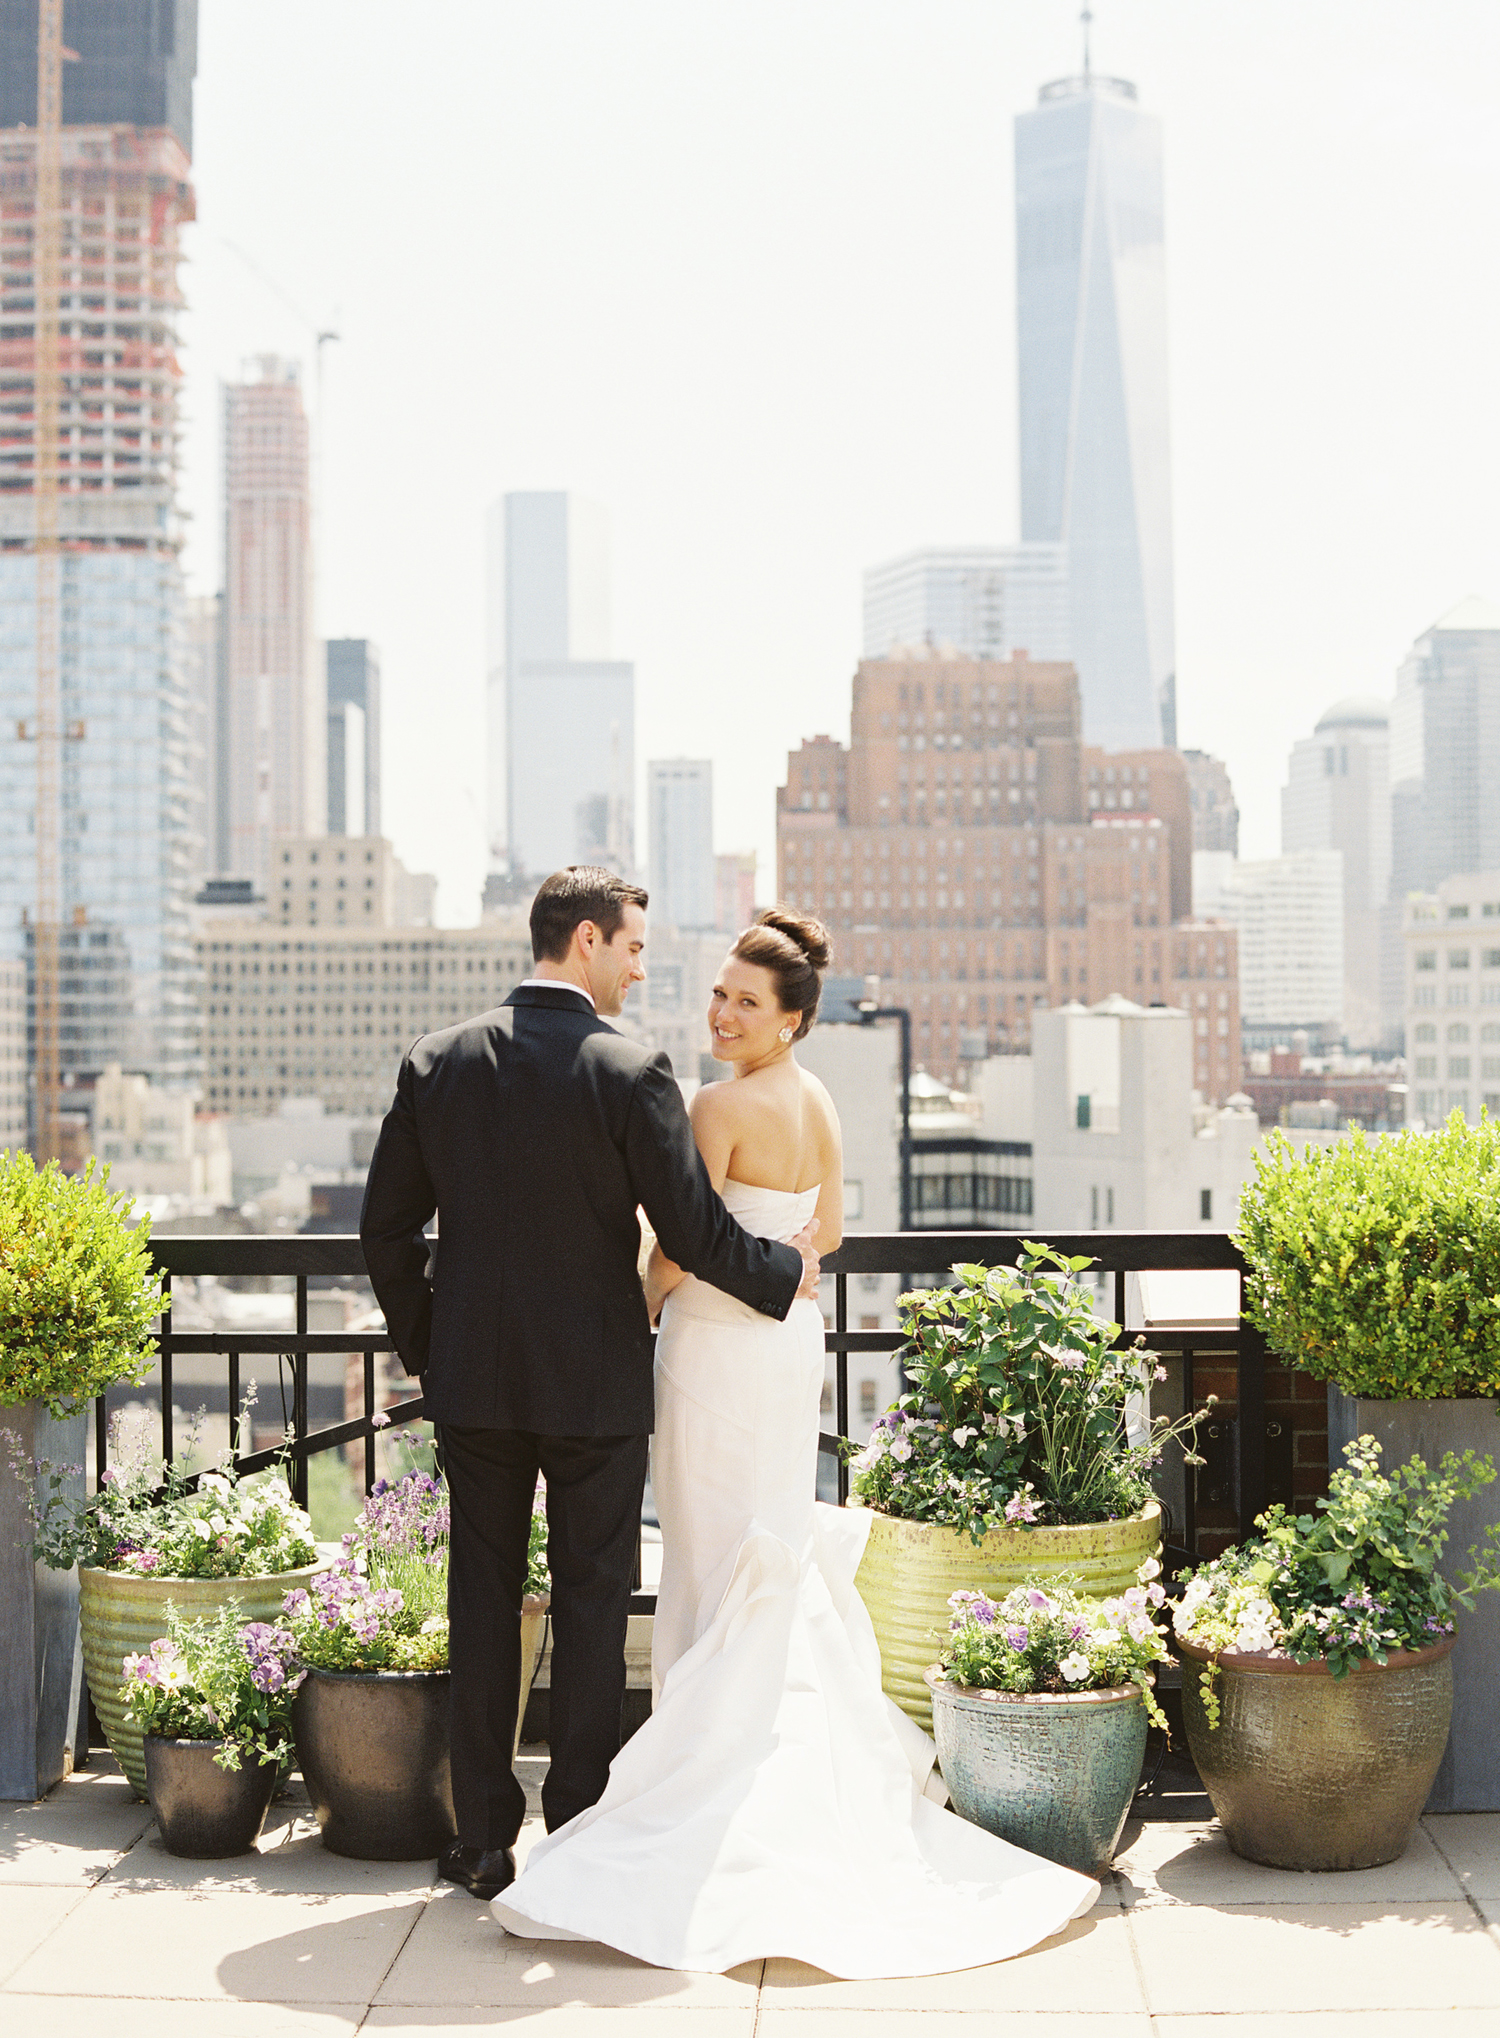 How to Look #Flawless in Your Wedding Photos